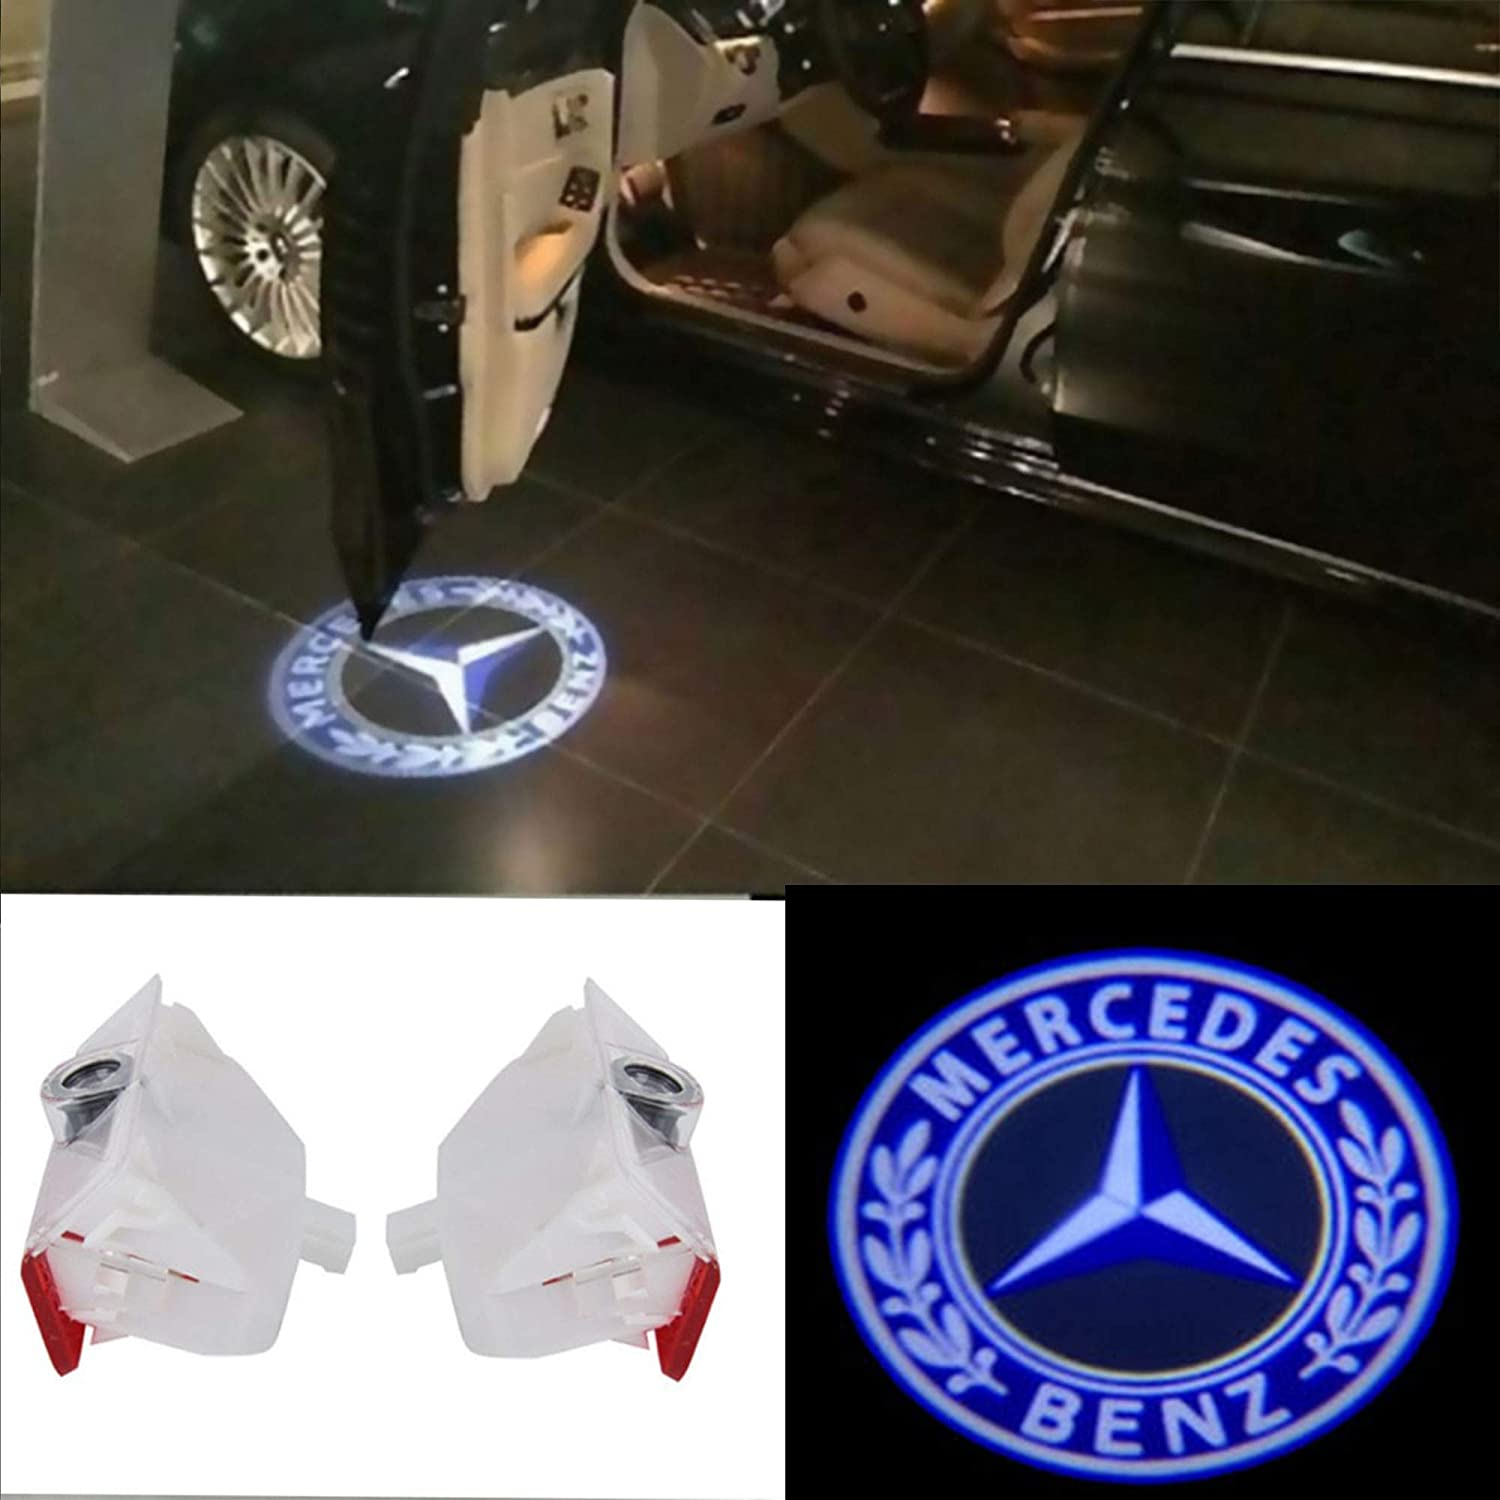 CNAutoLicht 2X Cree LED Door Step Courtesy Light Welcome Light Laser Shadow Logo Projector Lamp For Mercedes Benz X204 GLK200 GLK300 GLK350 08-16 W168 A150 A190 A200 97-04 W245 B150 B160 B200 05-11 BL